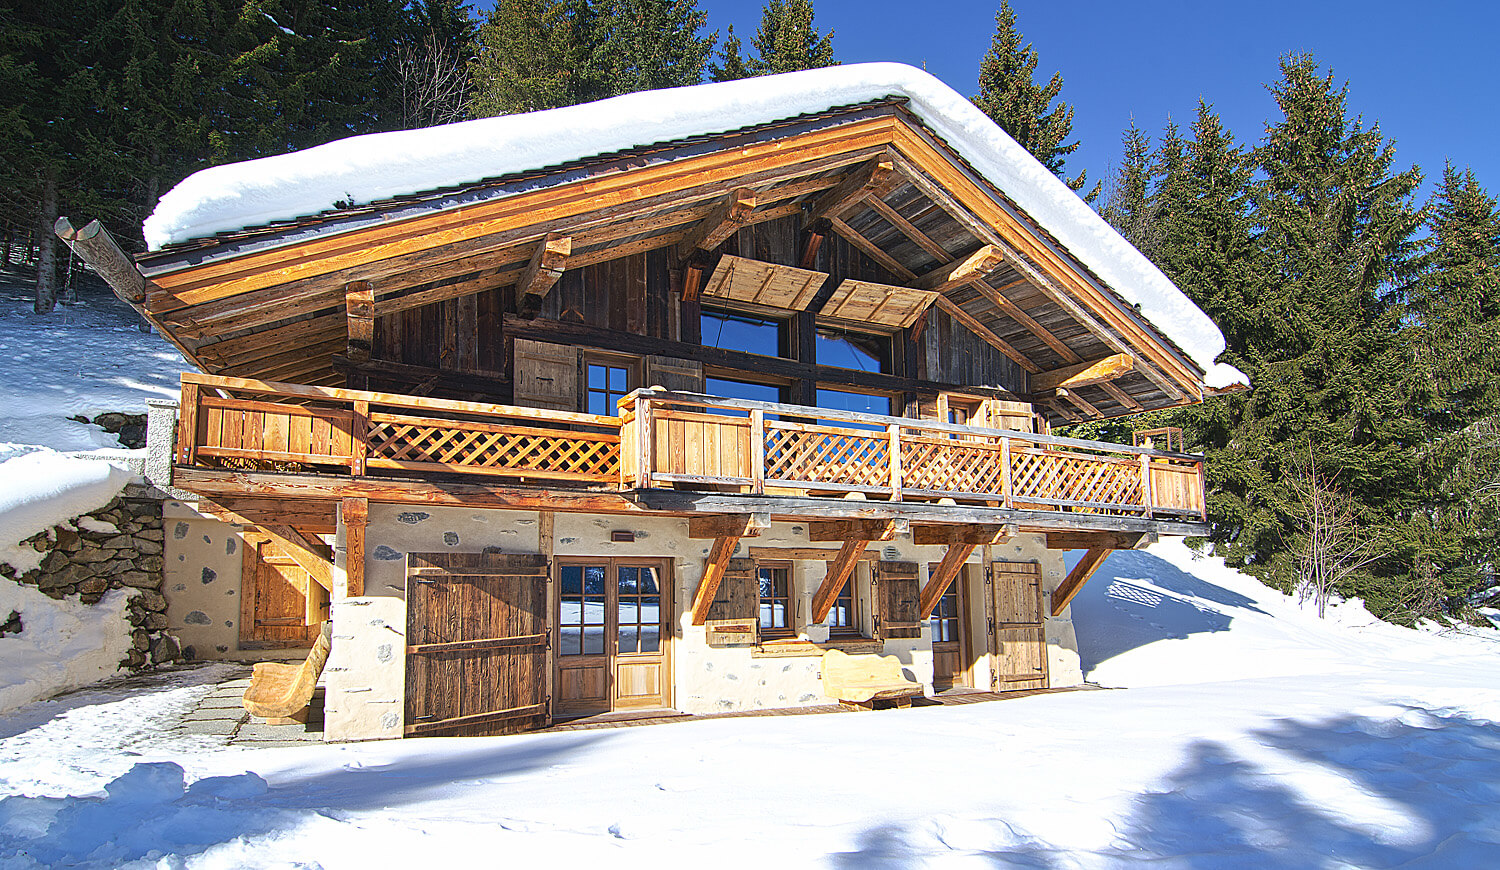 Chalet à vendre à Saint Gervais - Chalet for sale in Saint Gervais